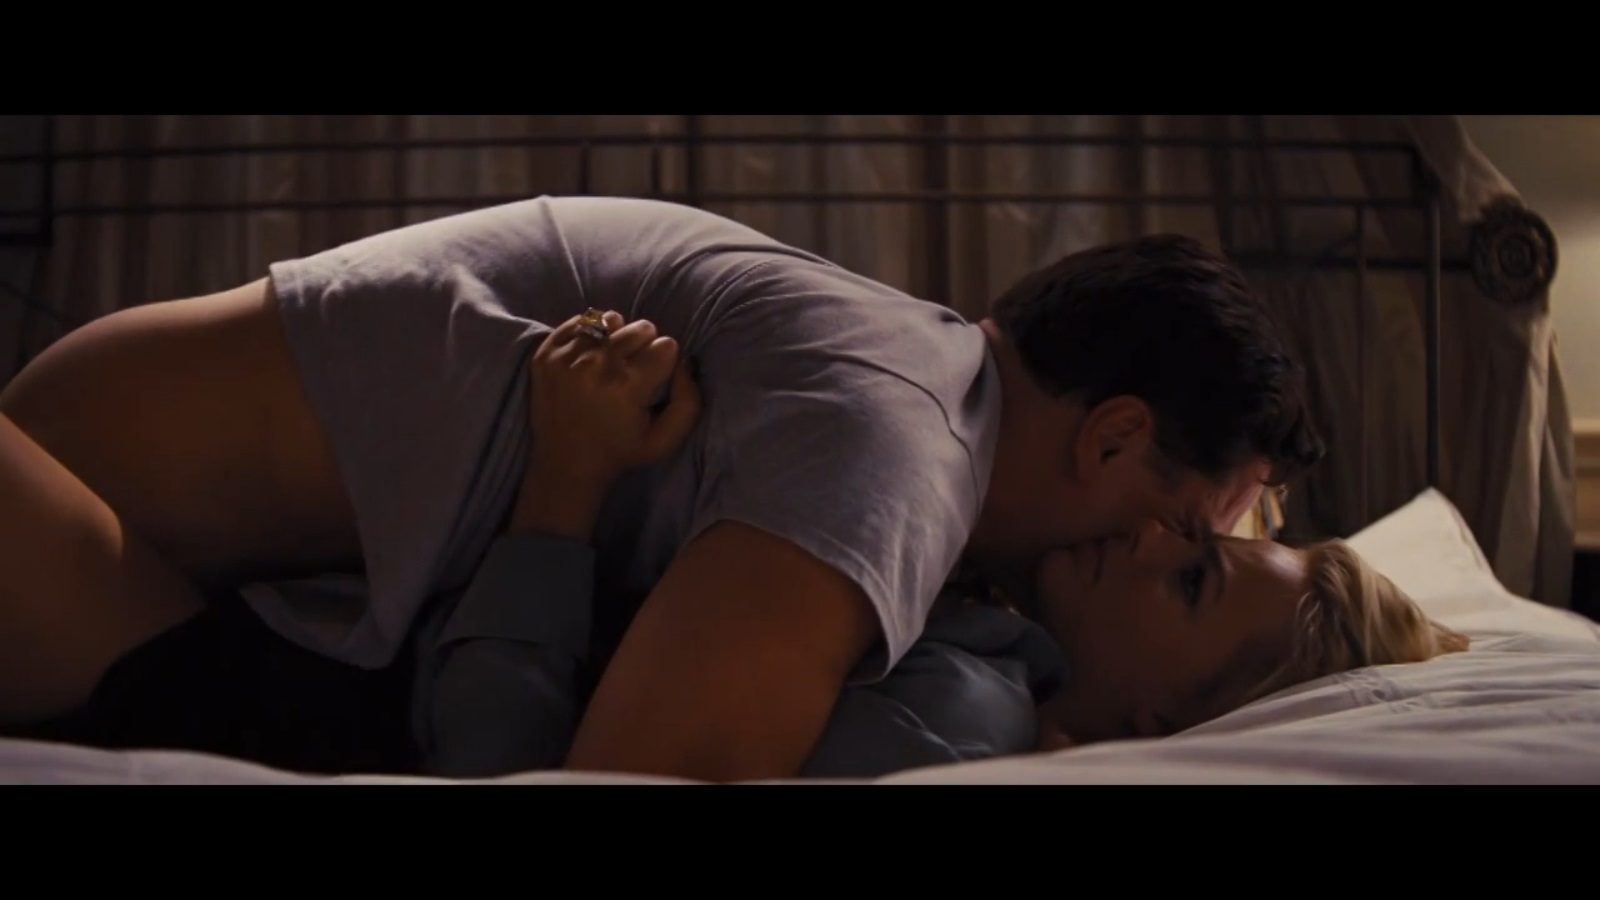 Sex scenes from movies view